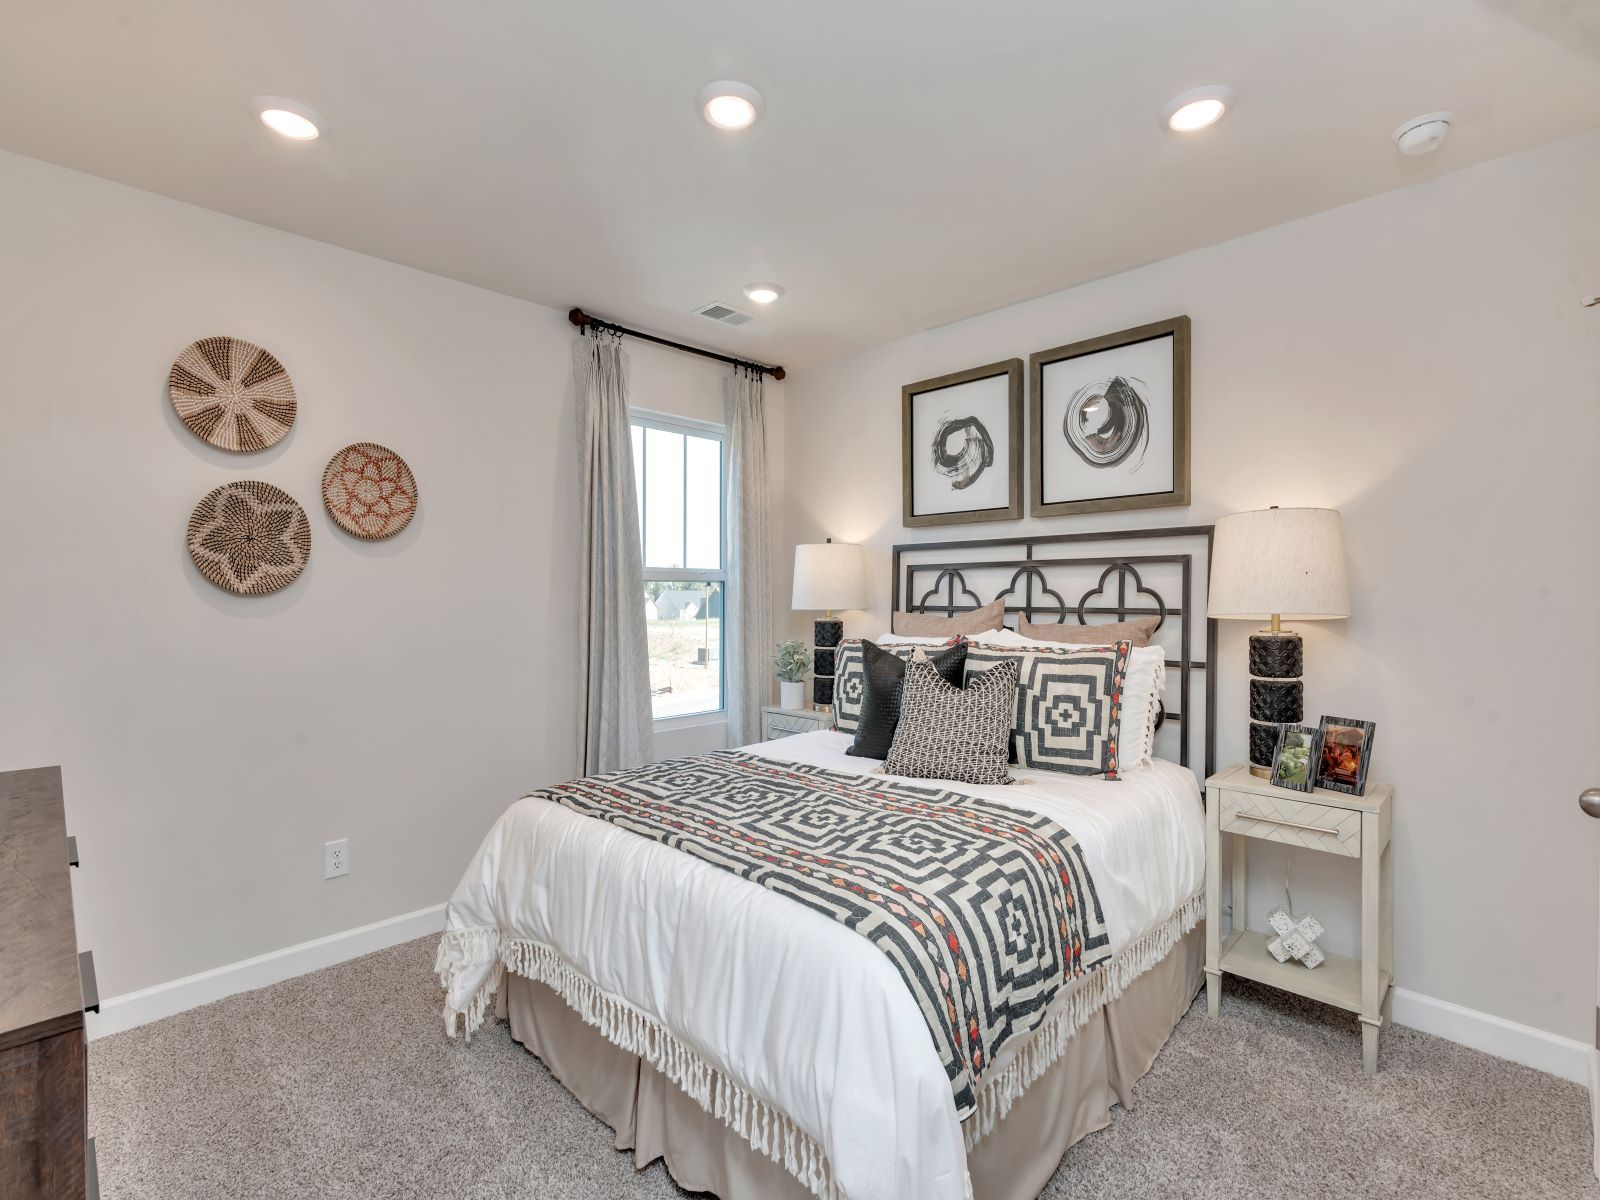 Bedroom featured in the Chatham By Meritage Homes in Charlotte, NC